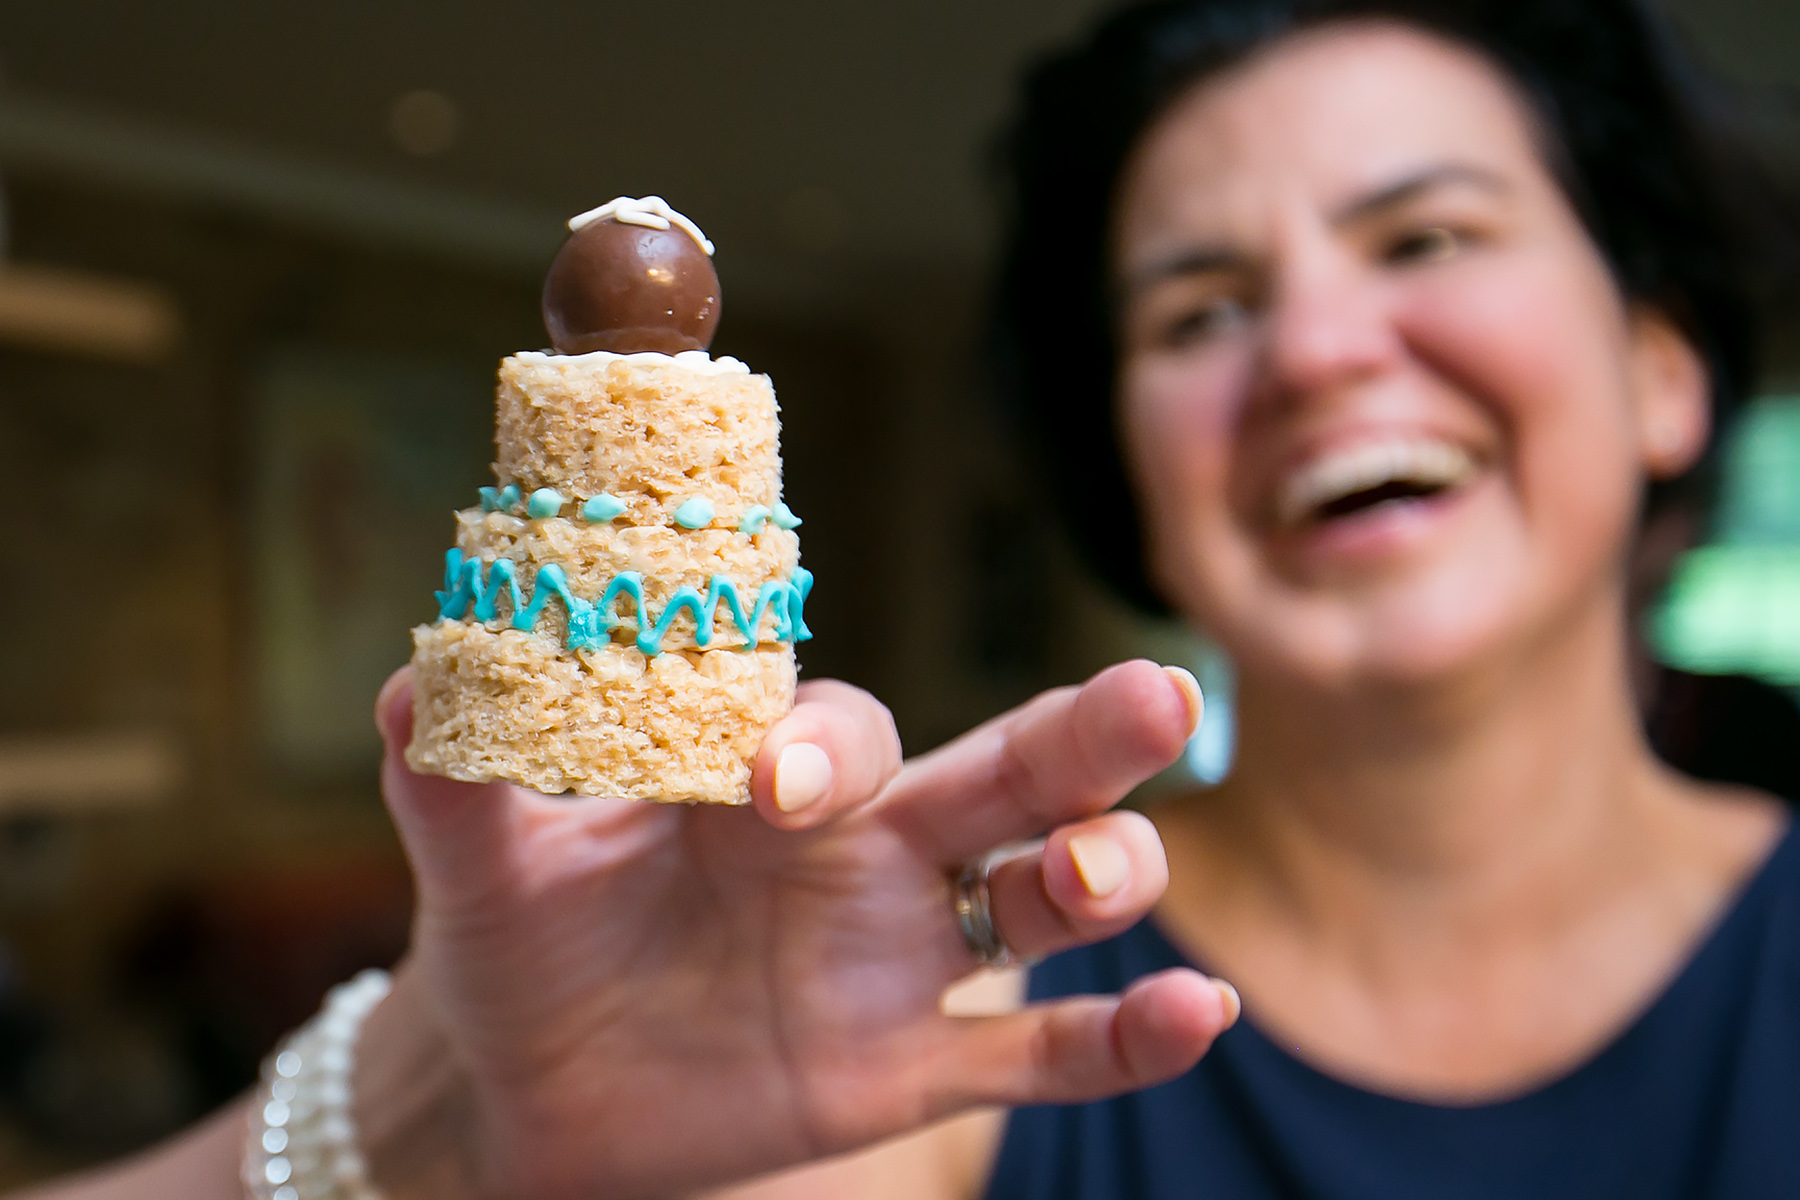 Small Backyard Wedding Photography | a tiny rice crispy cake made for them by a friend